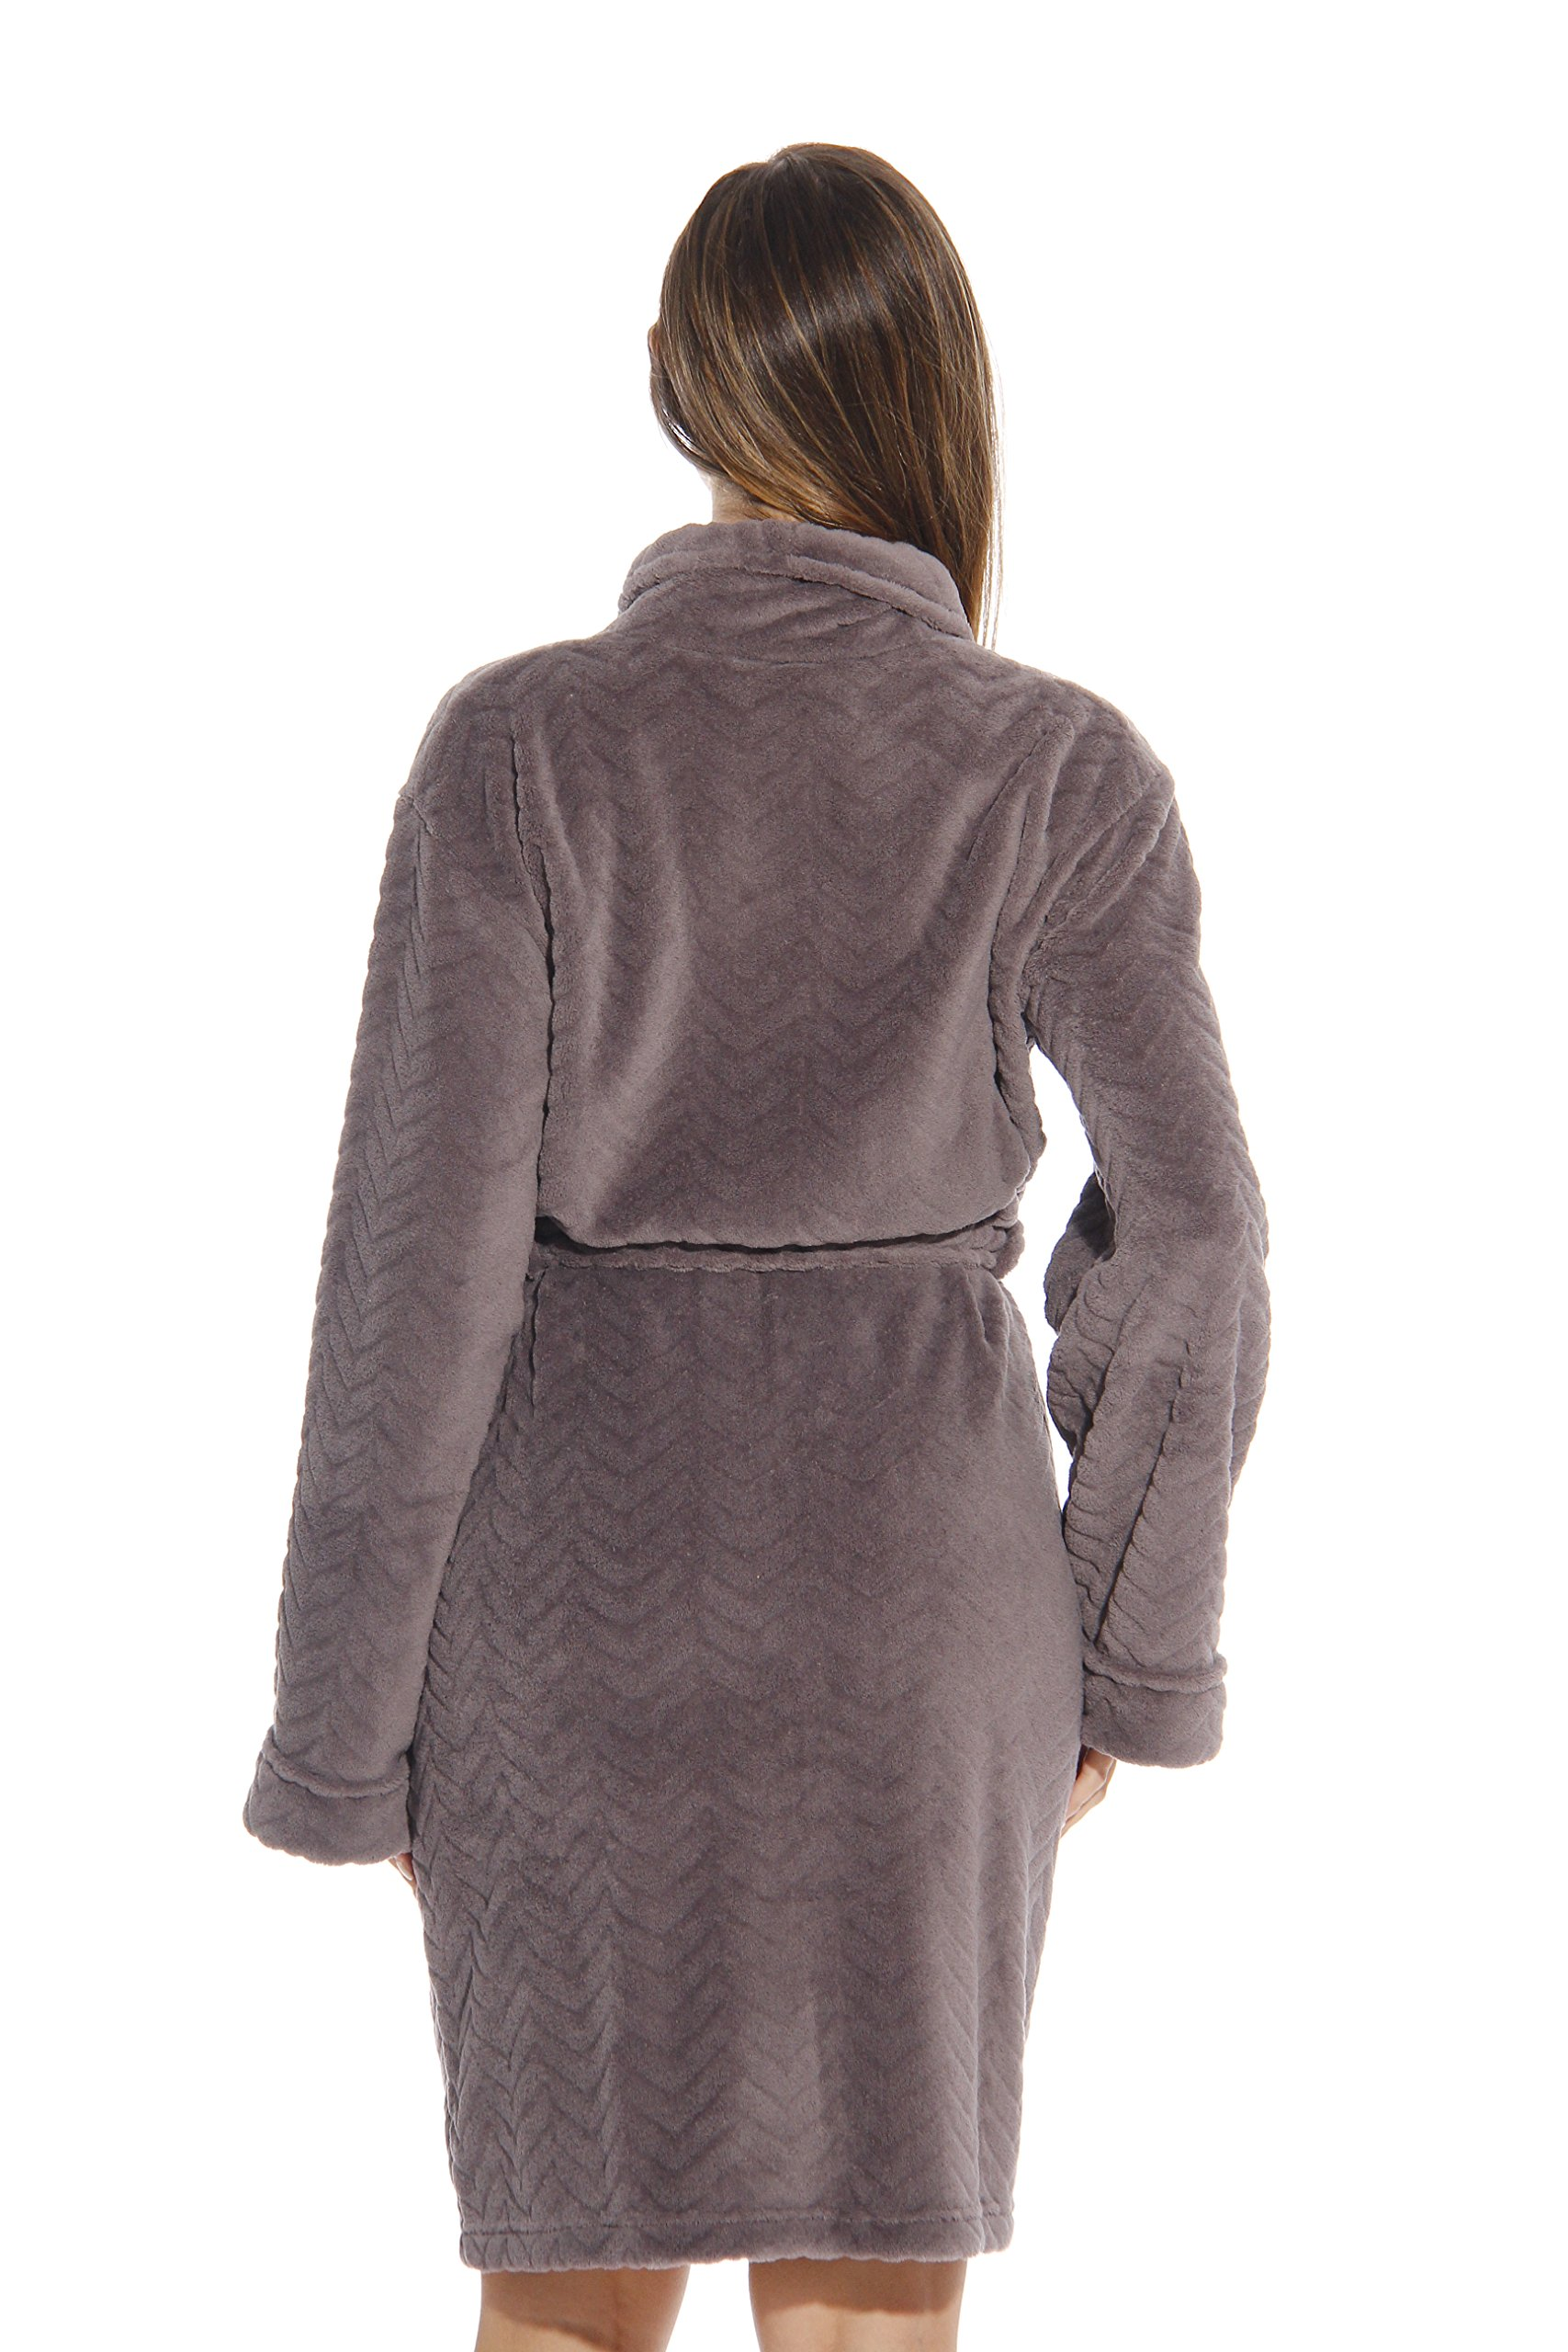 6312-Charcoal-M Just Love Kimono Robe / Bath Robes for Women by Just Love (Image #3)